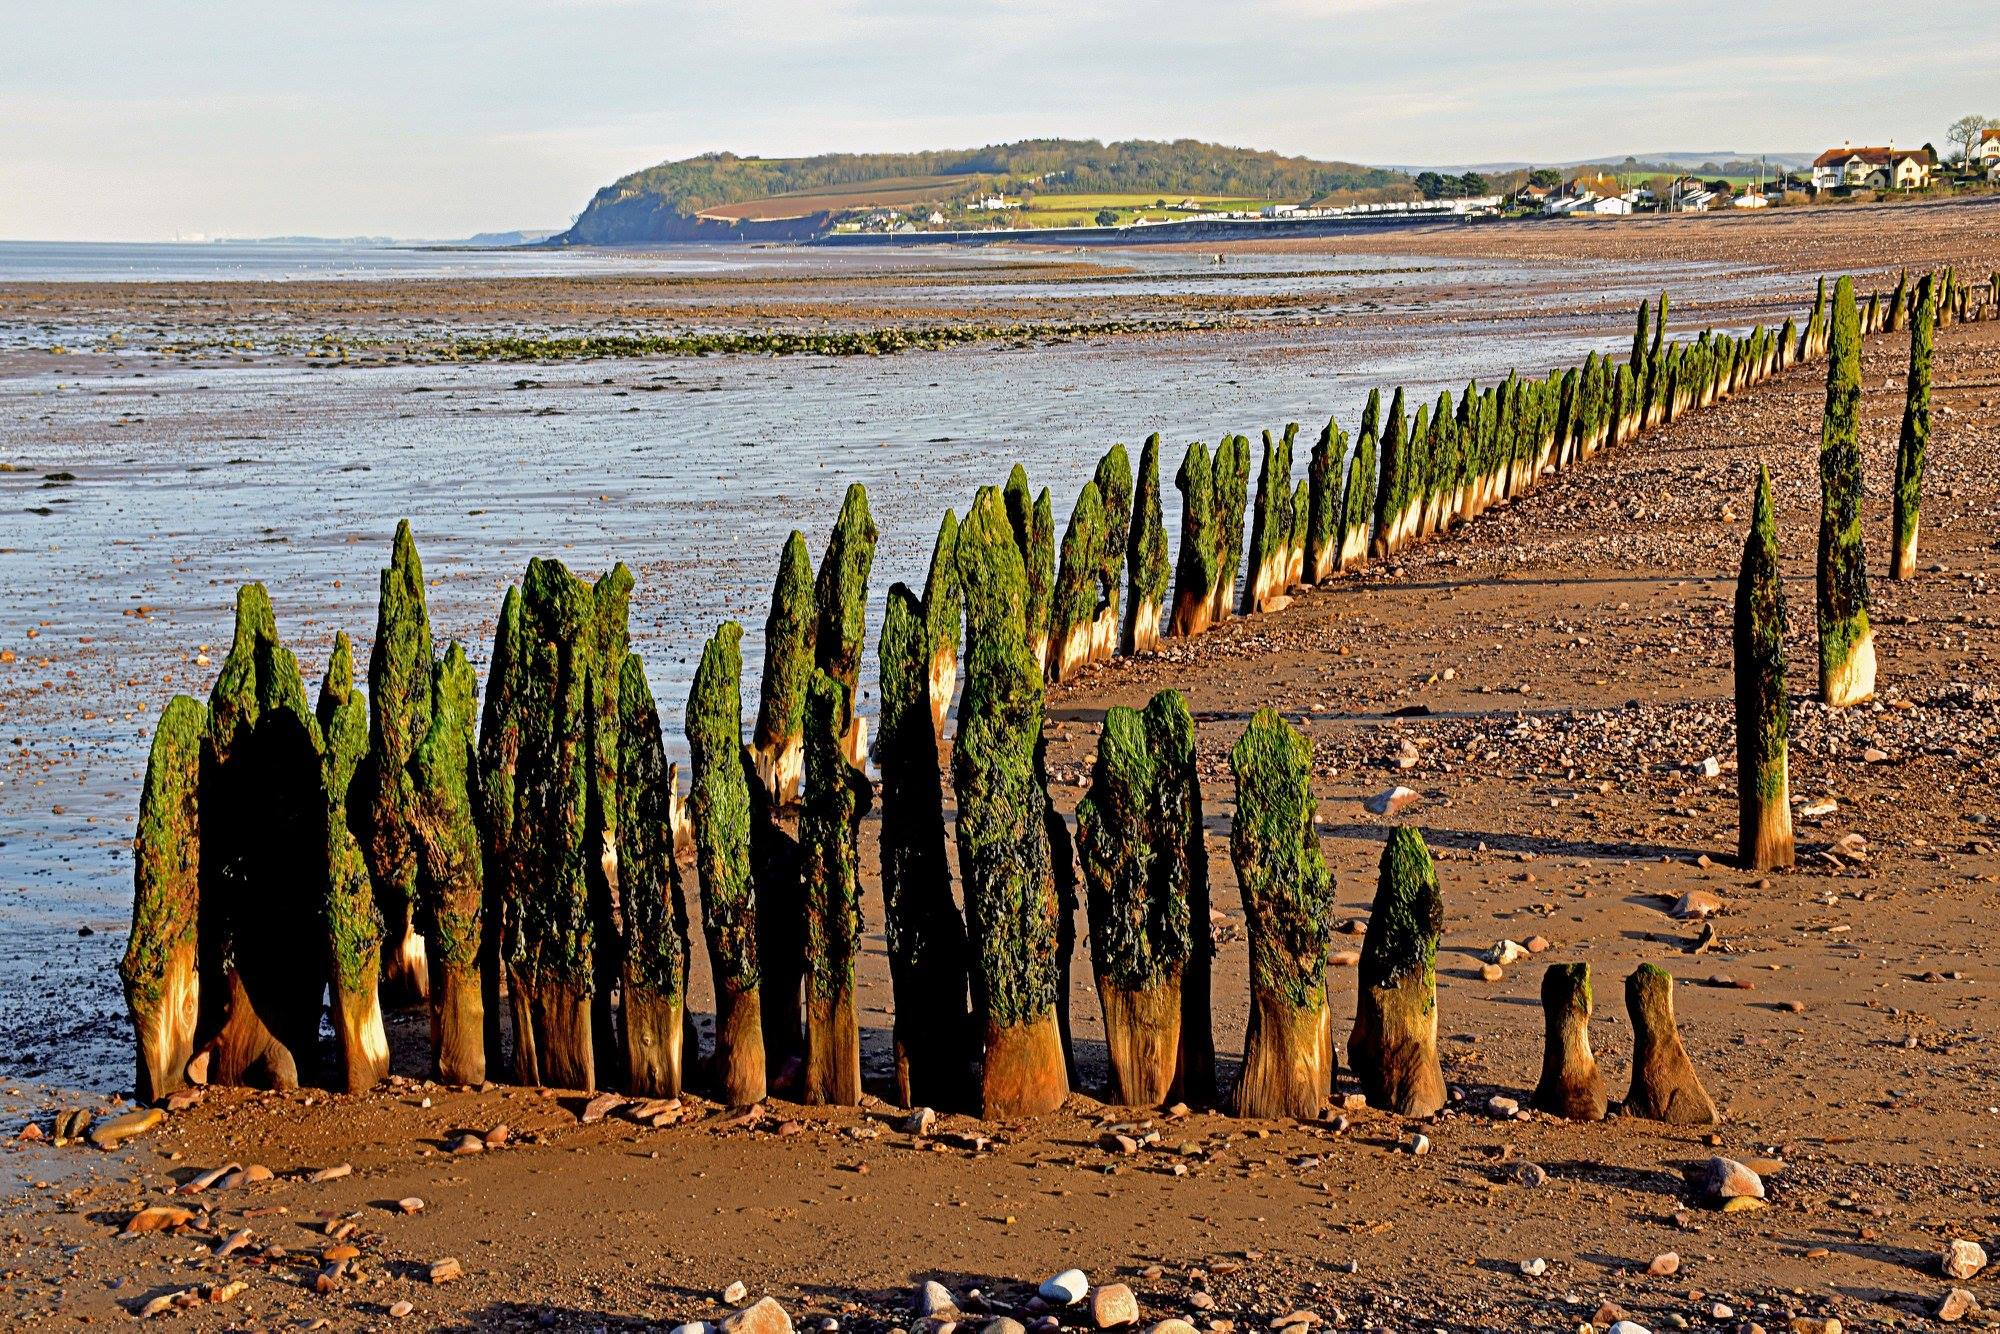 The Stakes at Blue Anchor Beach